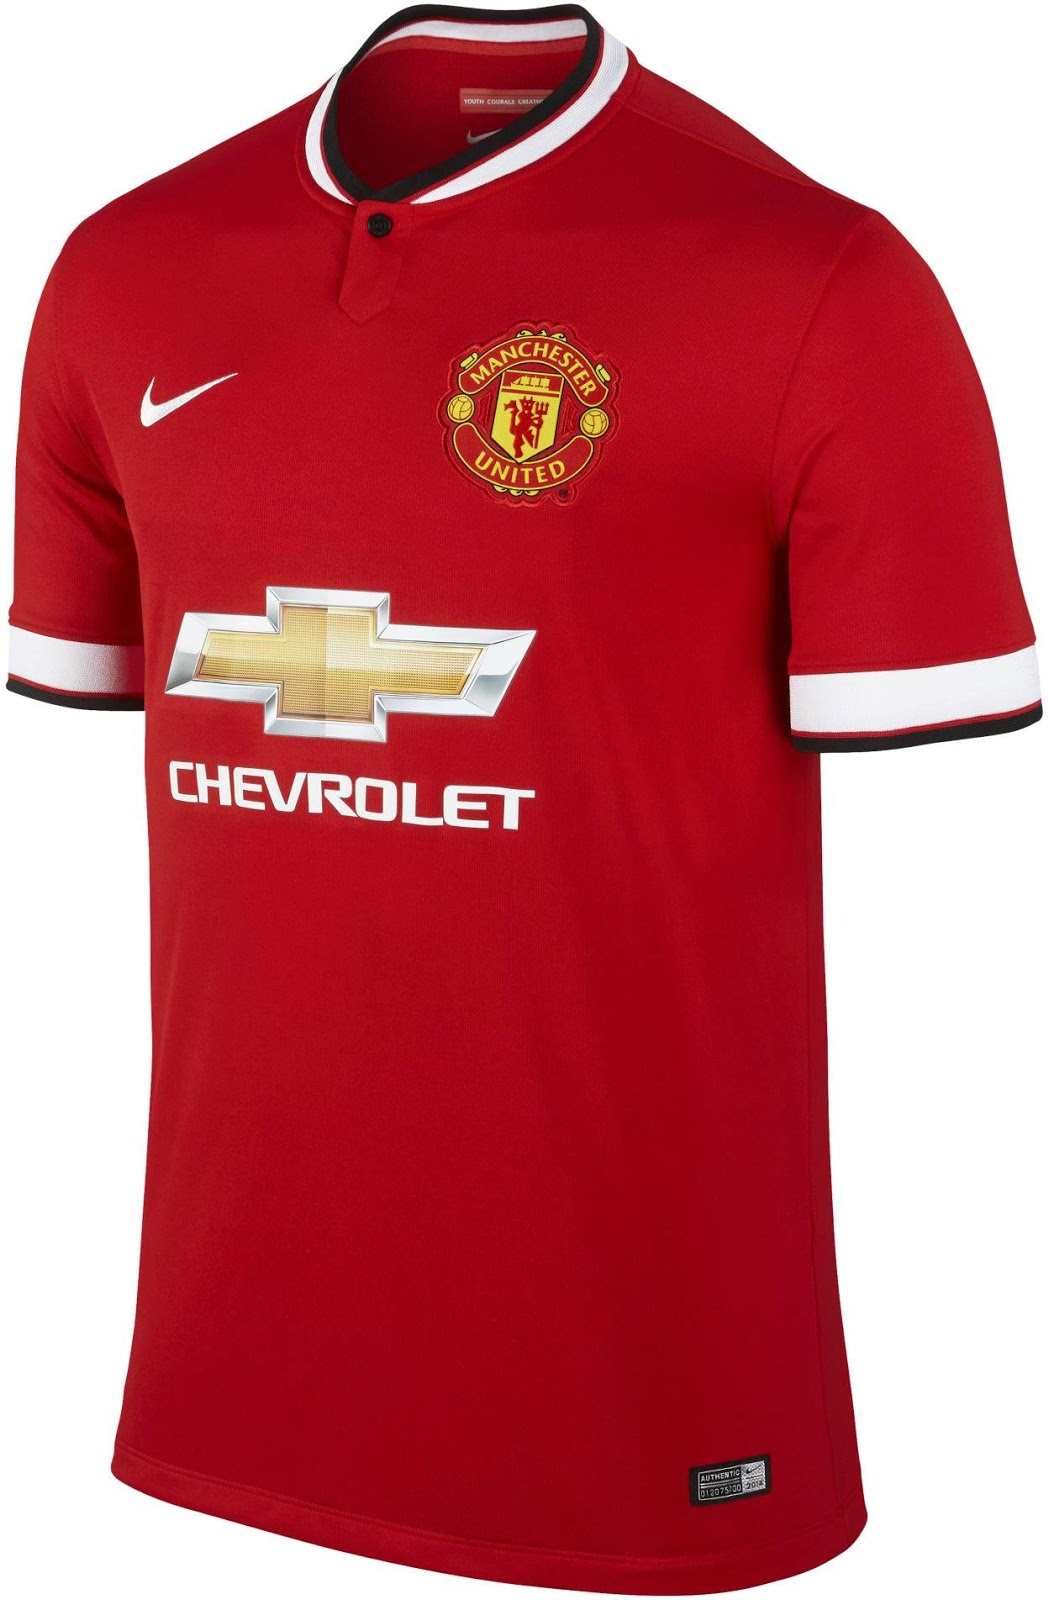 Design t shirt manchester united - The New Manchester United 14 15 Home Kit Features A Classical Kit Design The Main Color Diablo Red Is Combined With White Applications And Black Details